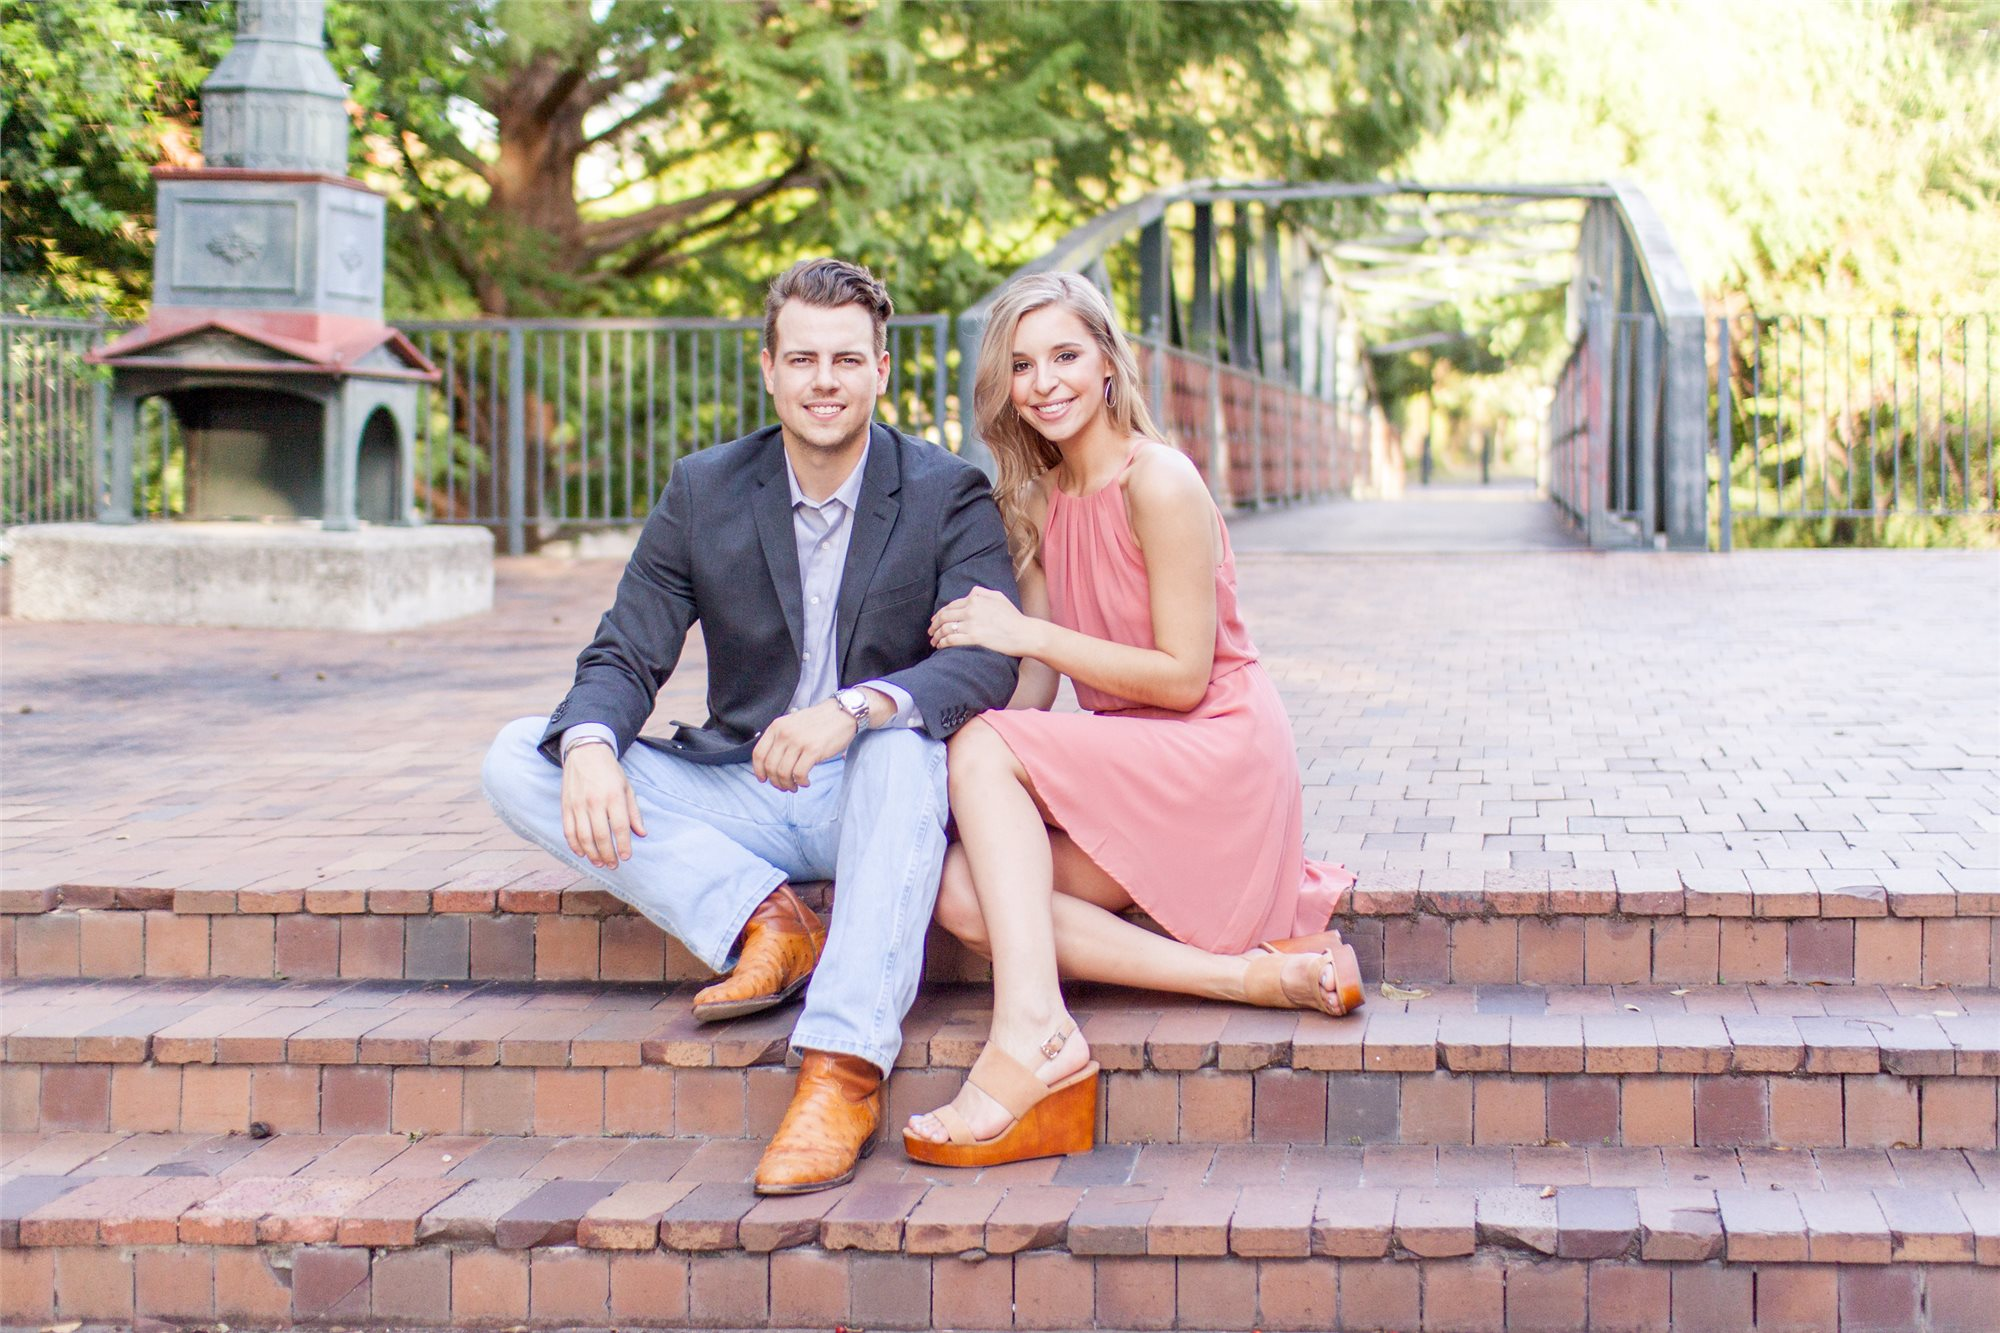 Chelsea Keith & Tanner Breed